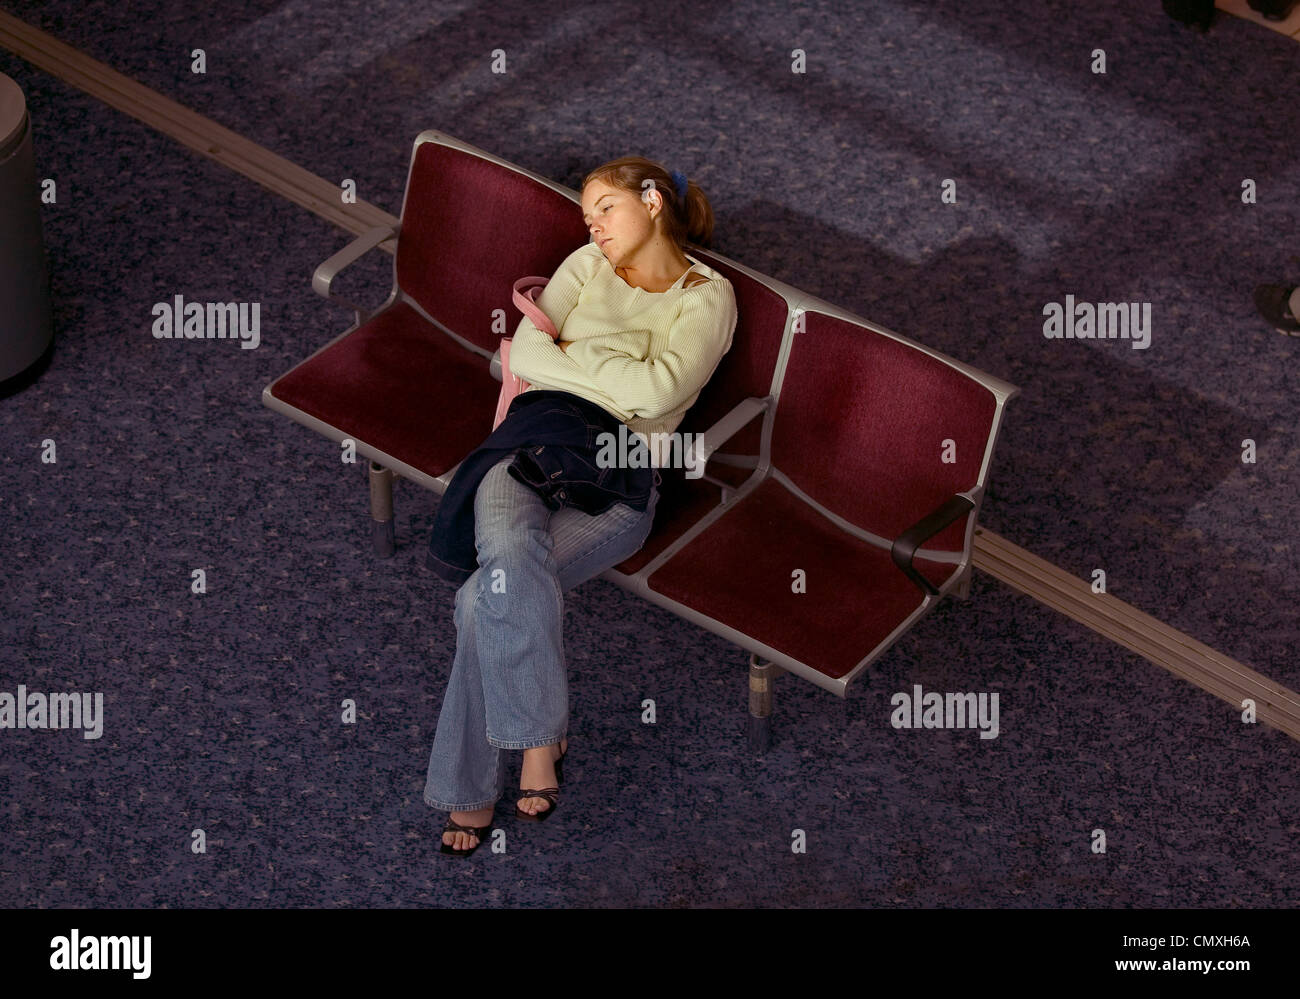 Woman passenger asleep in the seating area of departure lounge at Heathrow airport - Stock Image